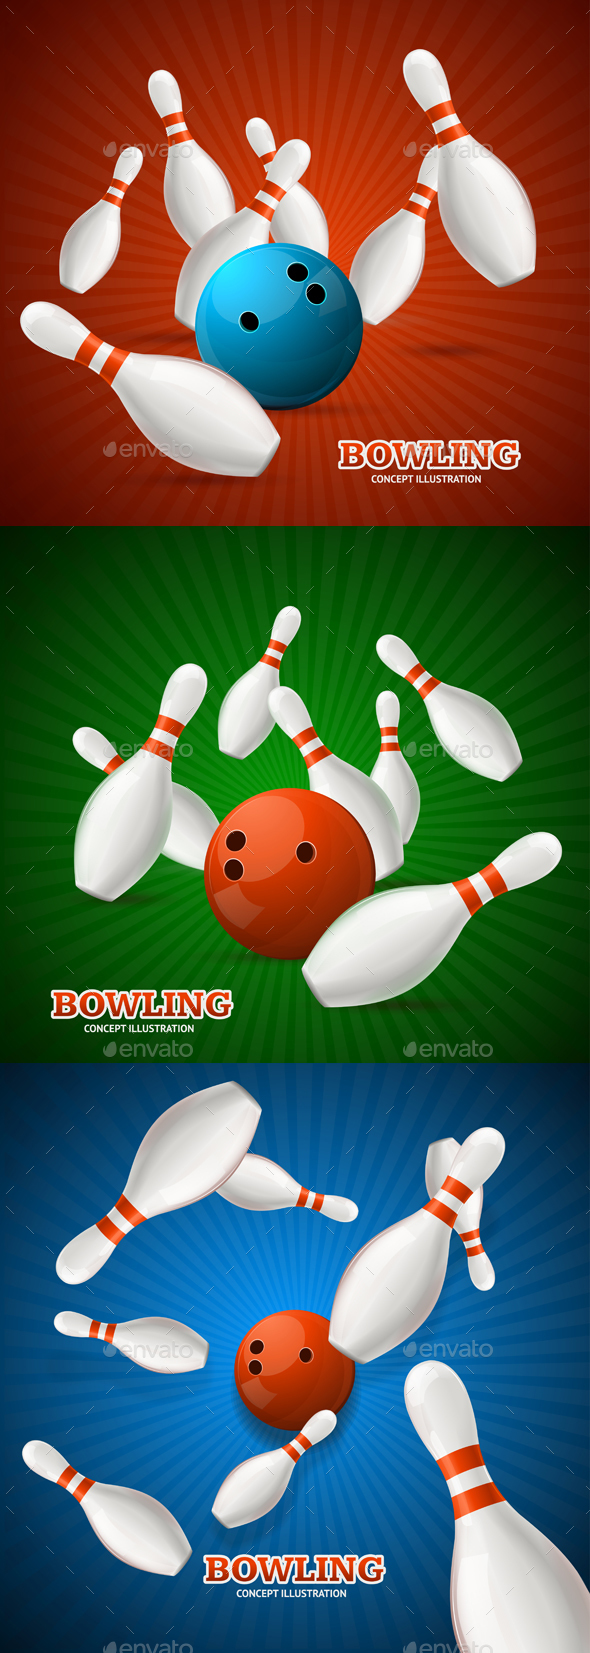 Bowling Concept - Sports/Activity Conceptual